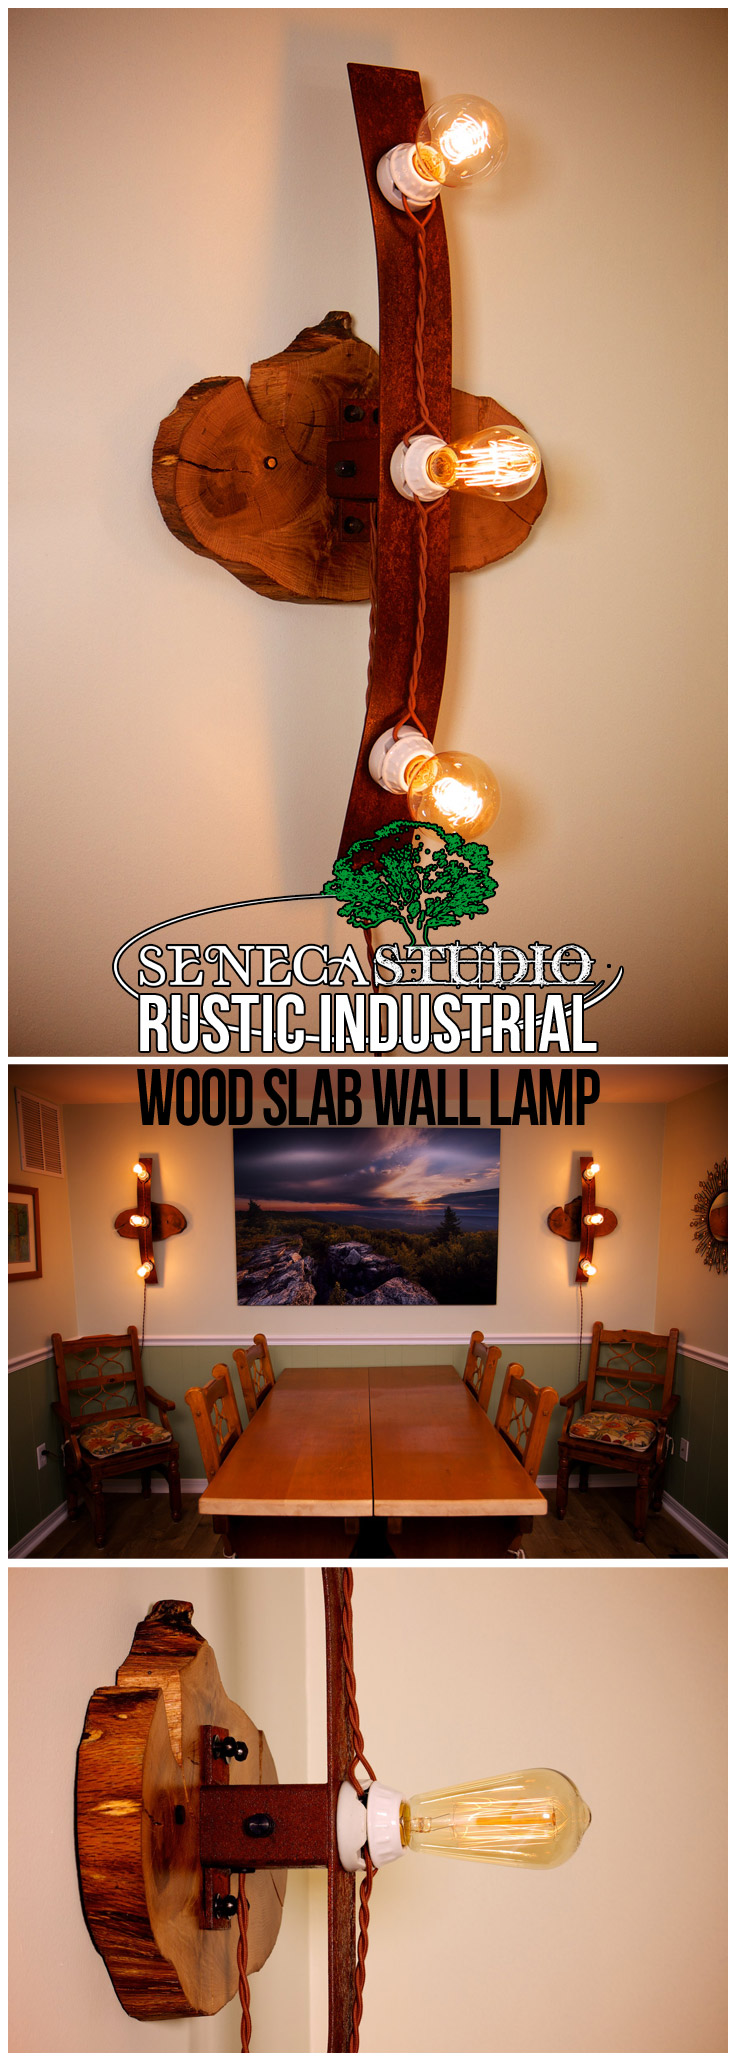 Rustic Industrial Wood Slab Wall Lamp